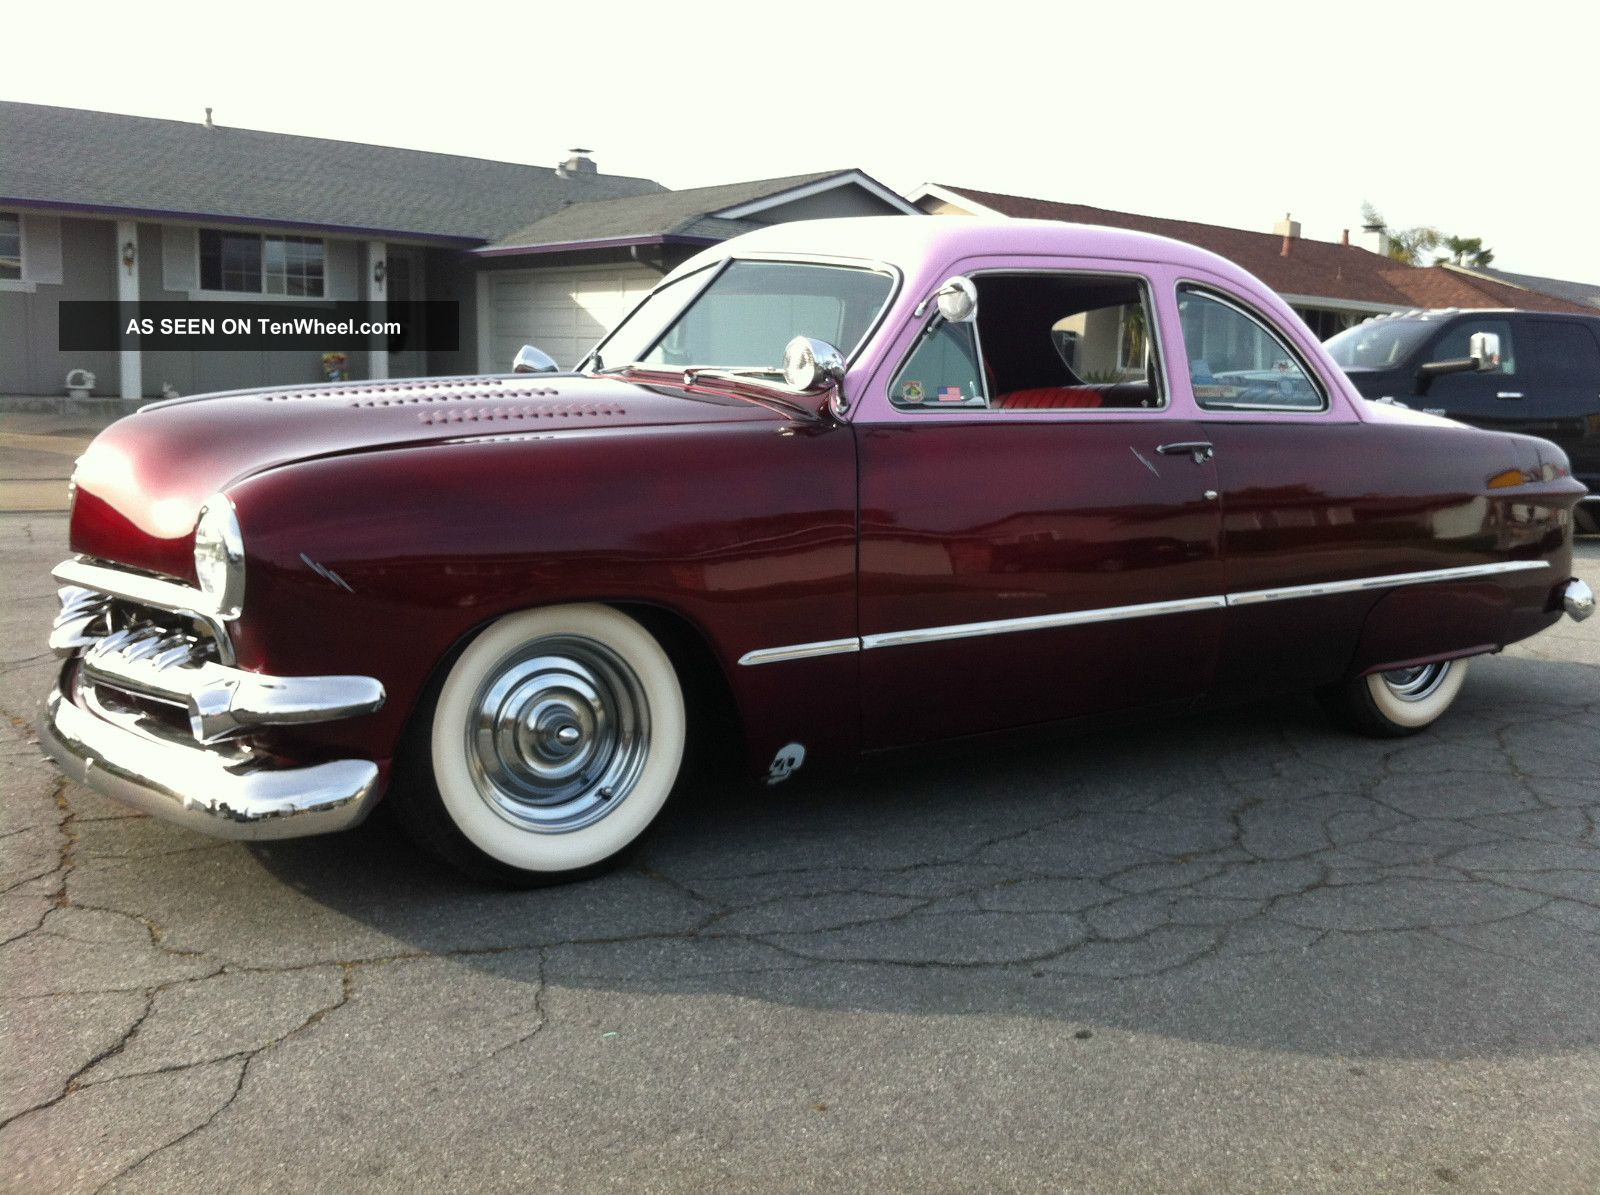 1949 Ford Shoebox Custom Coupe 127 Pictures And A Video Other photo